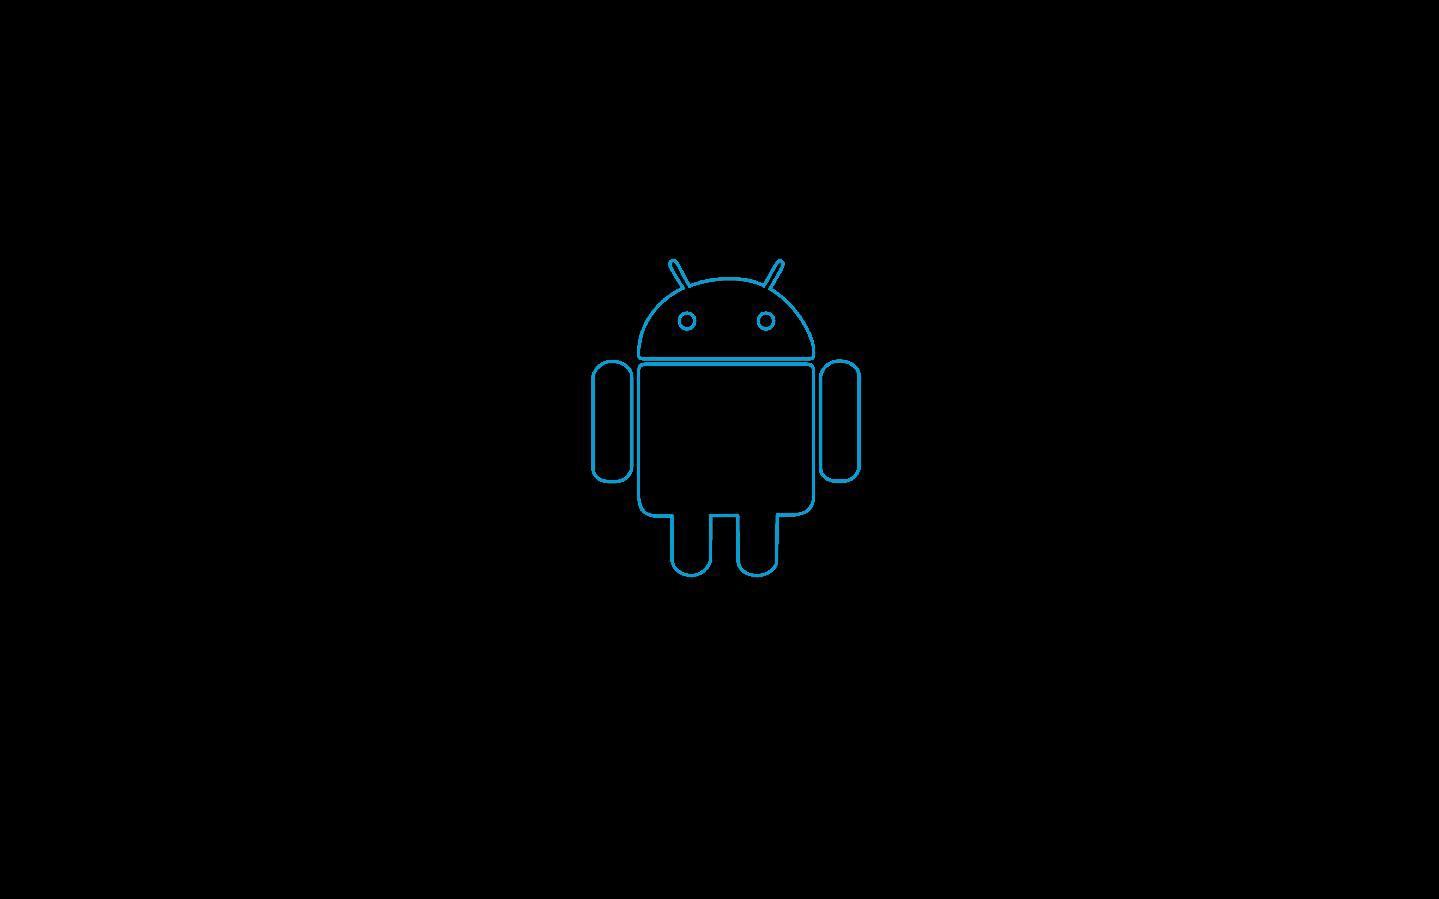 black android background hd wallpaper details 1439x899